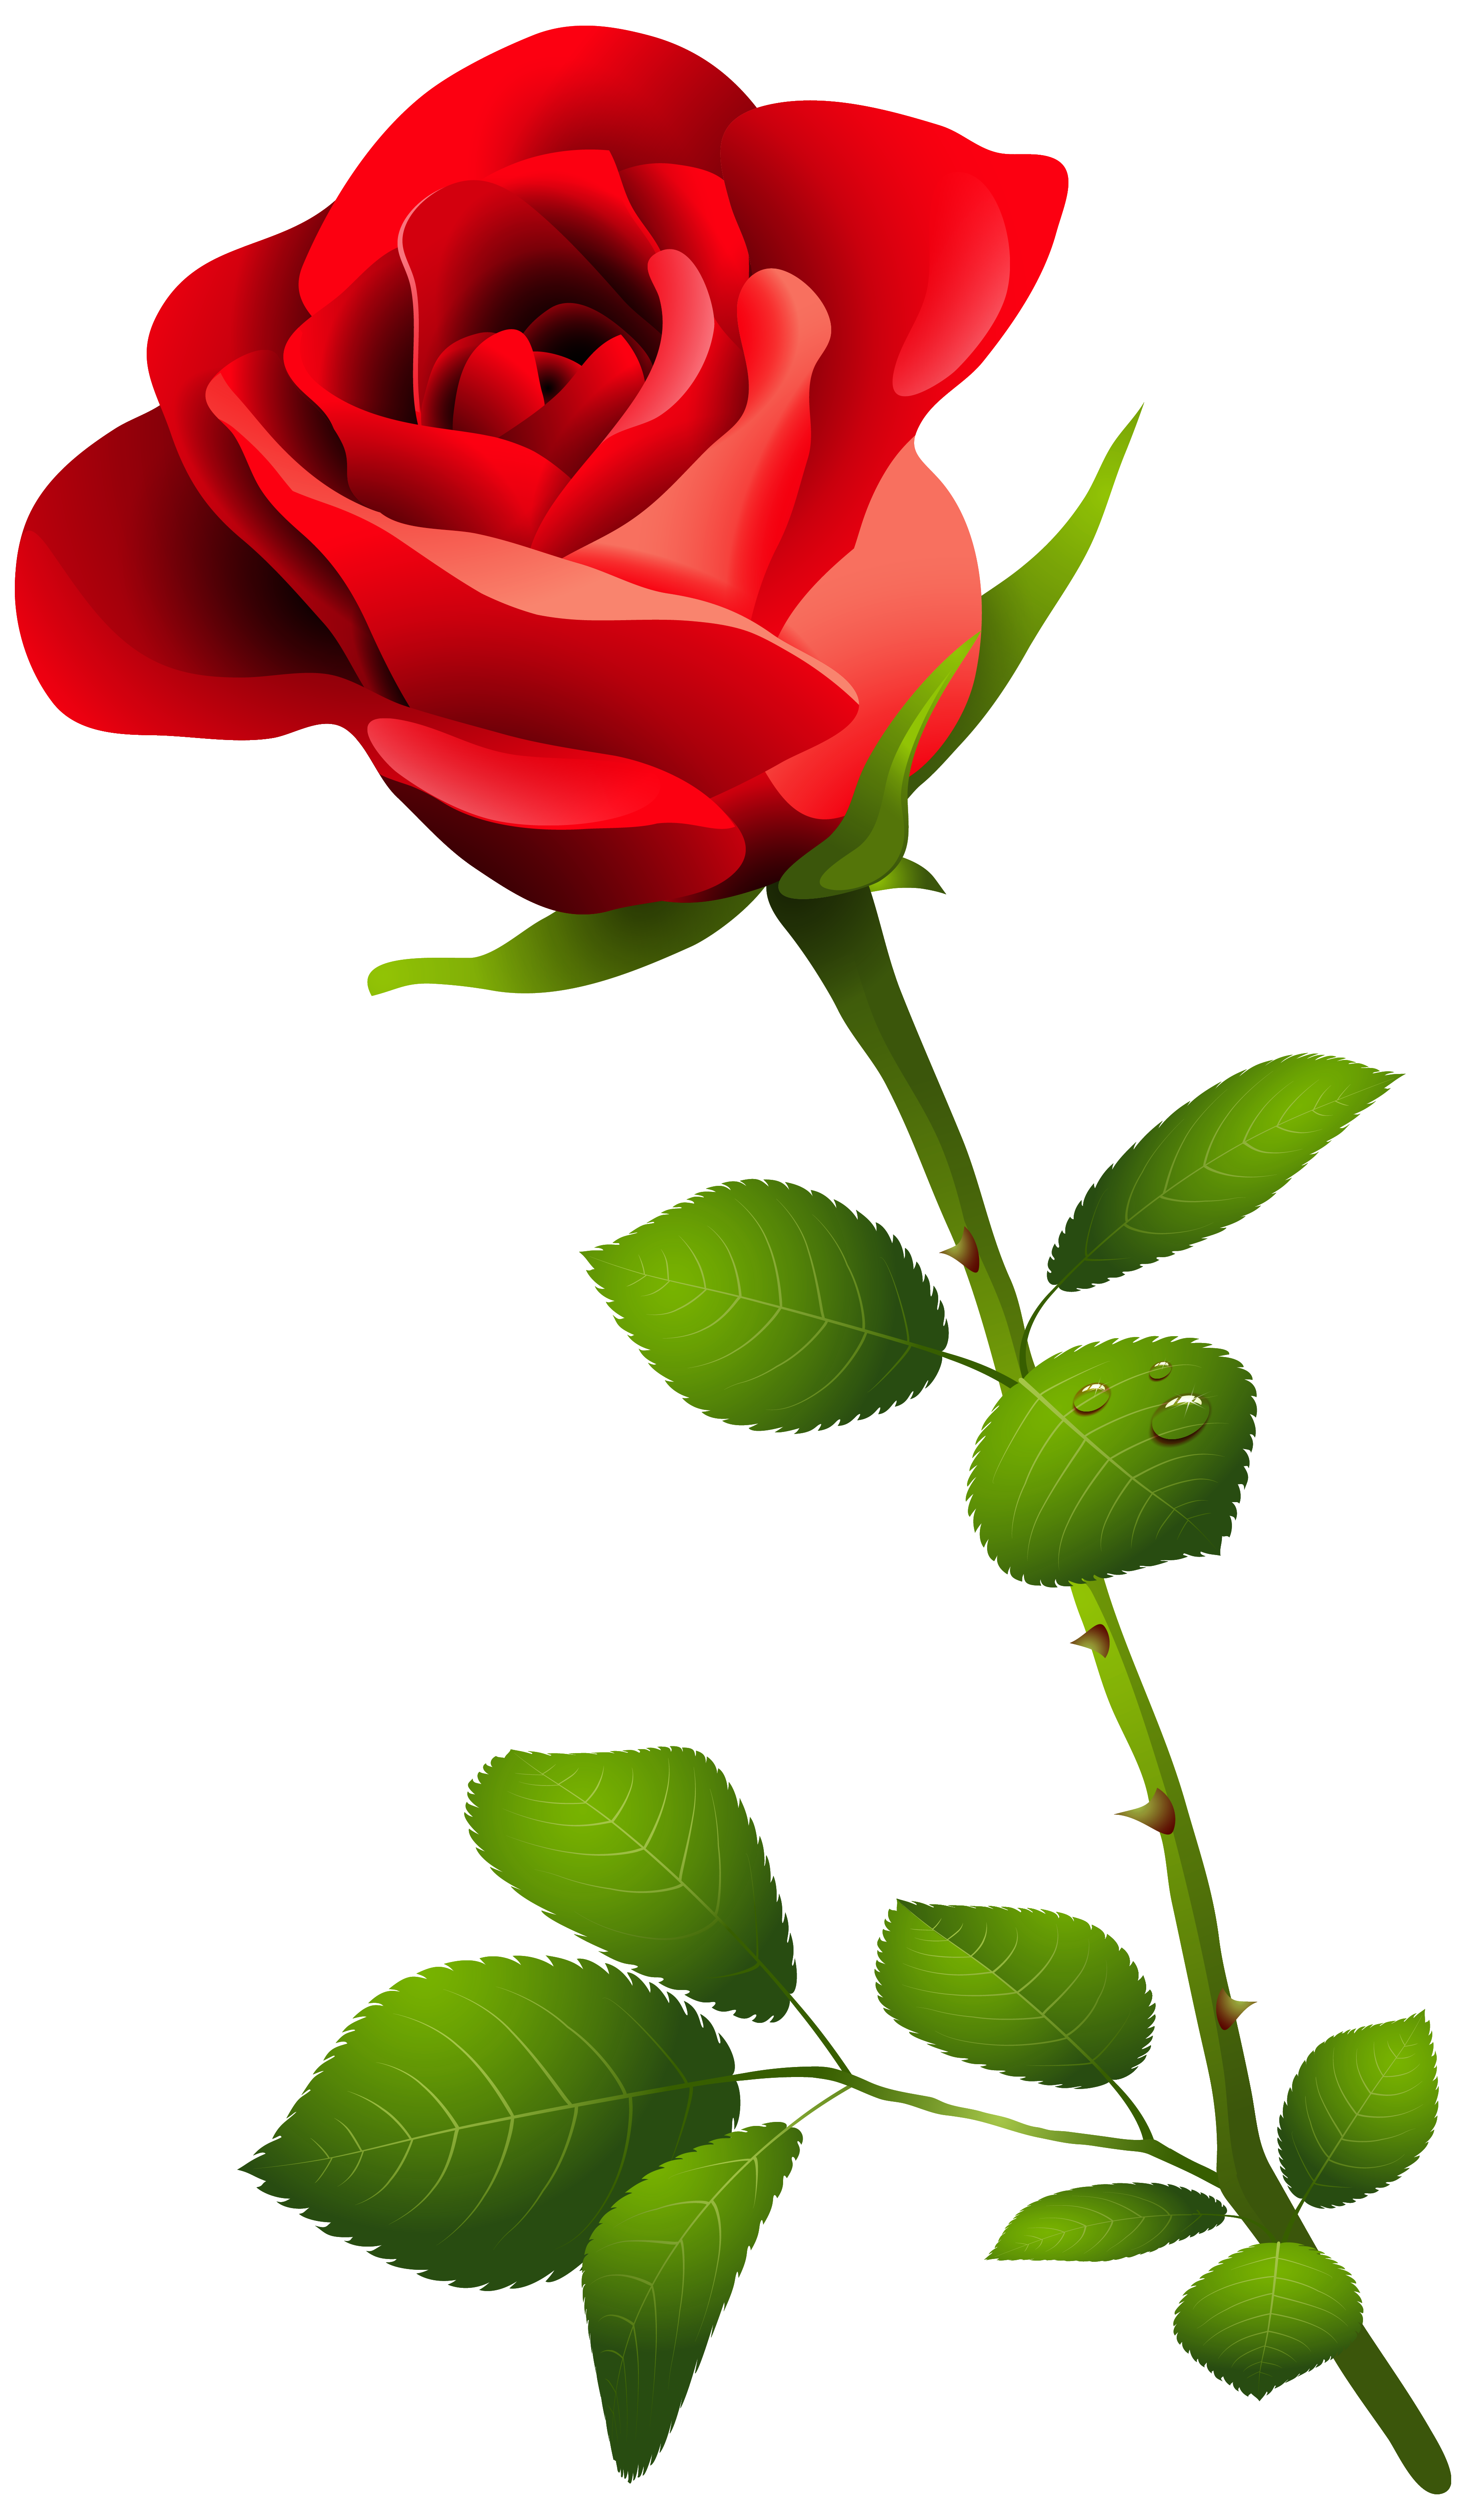 Flower with stem png. Red rose clipart image